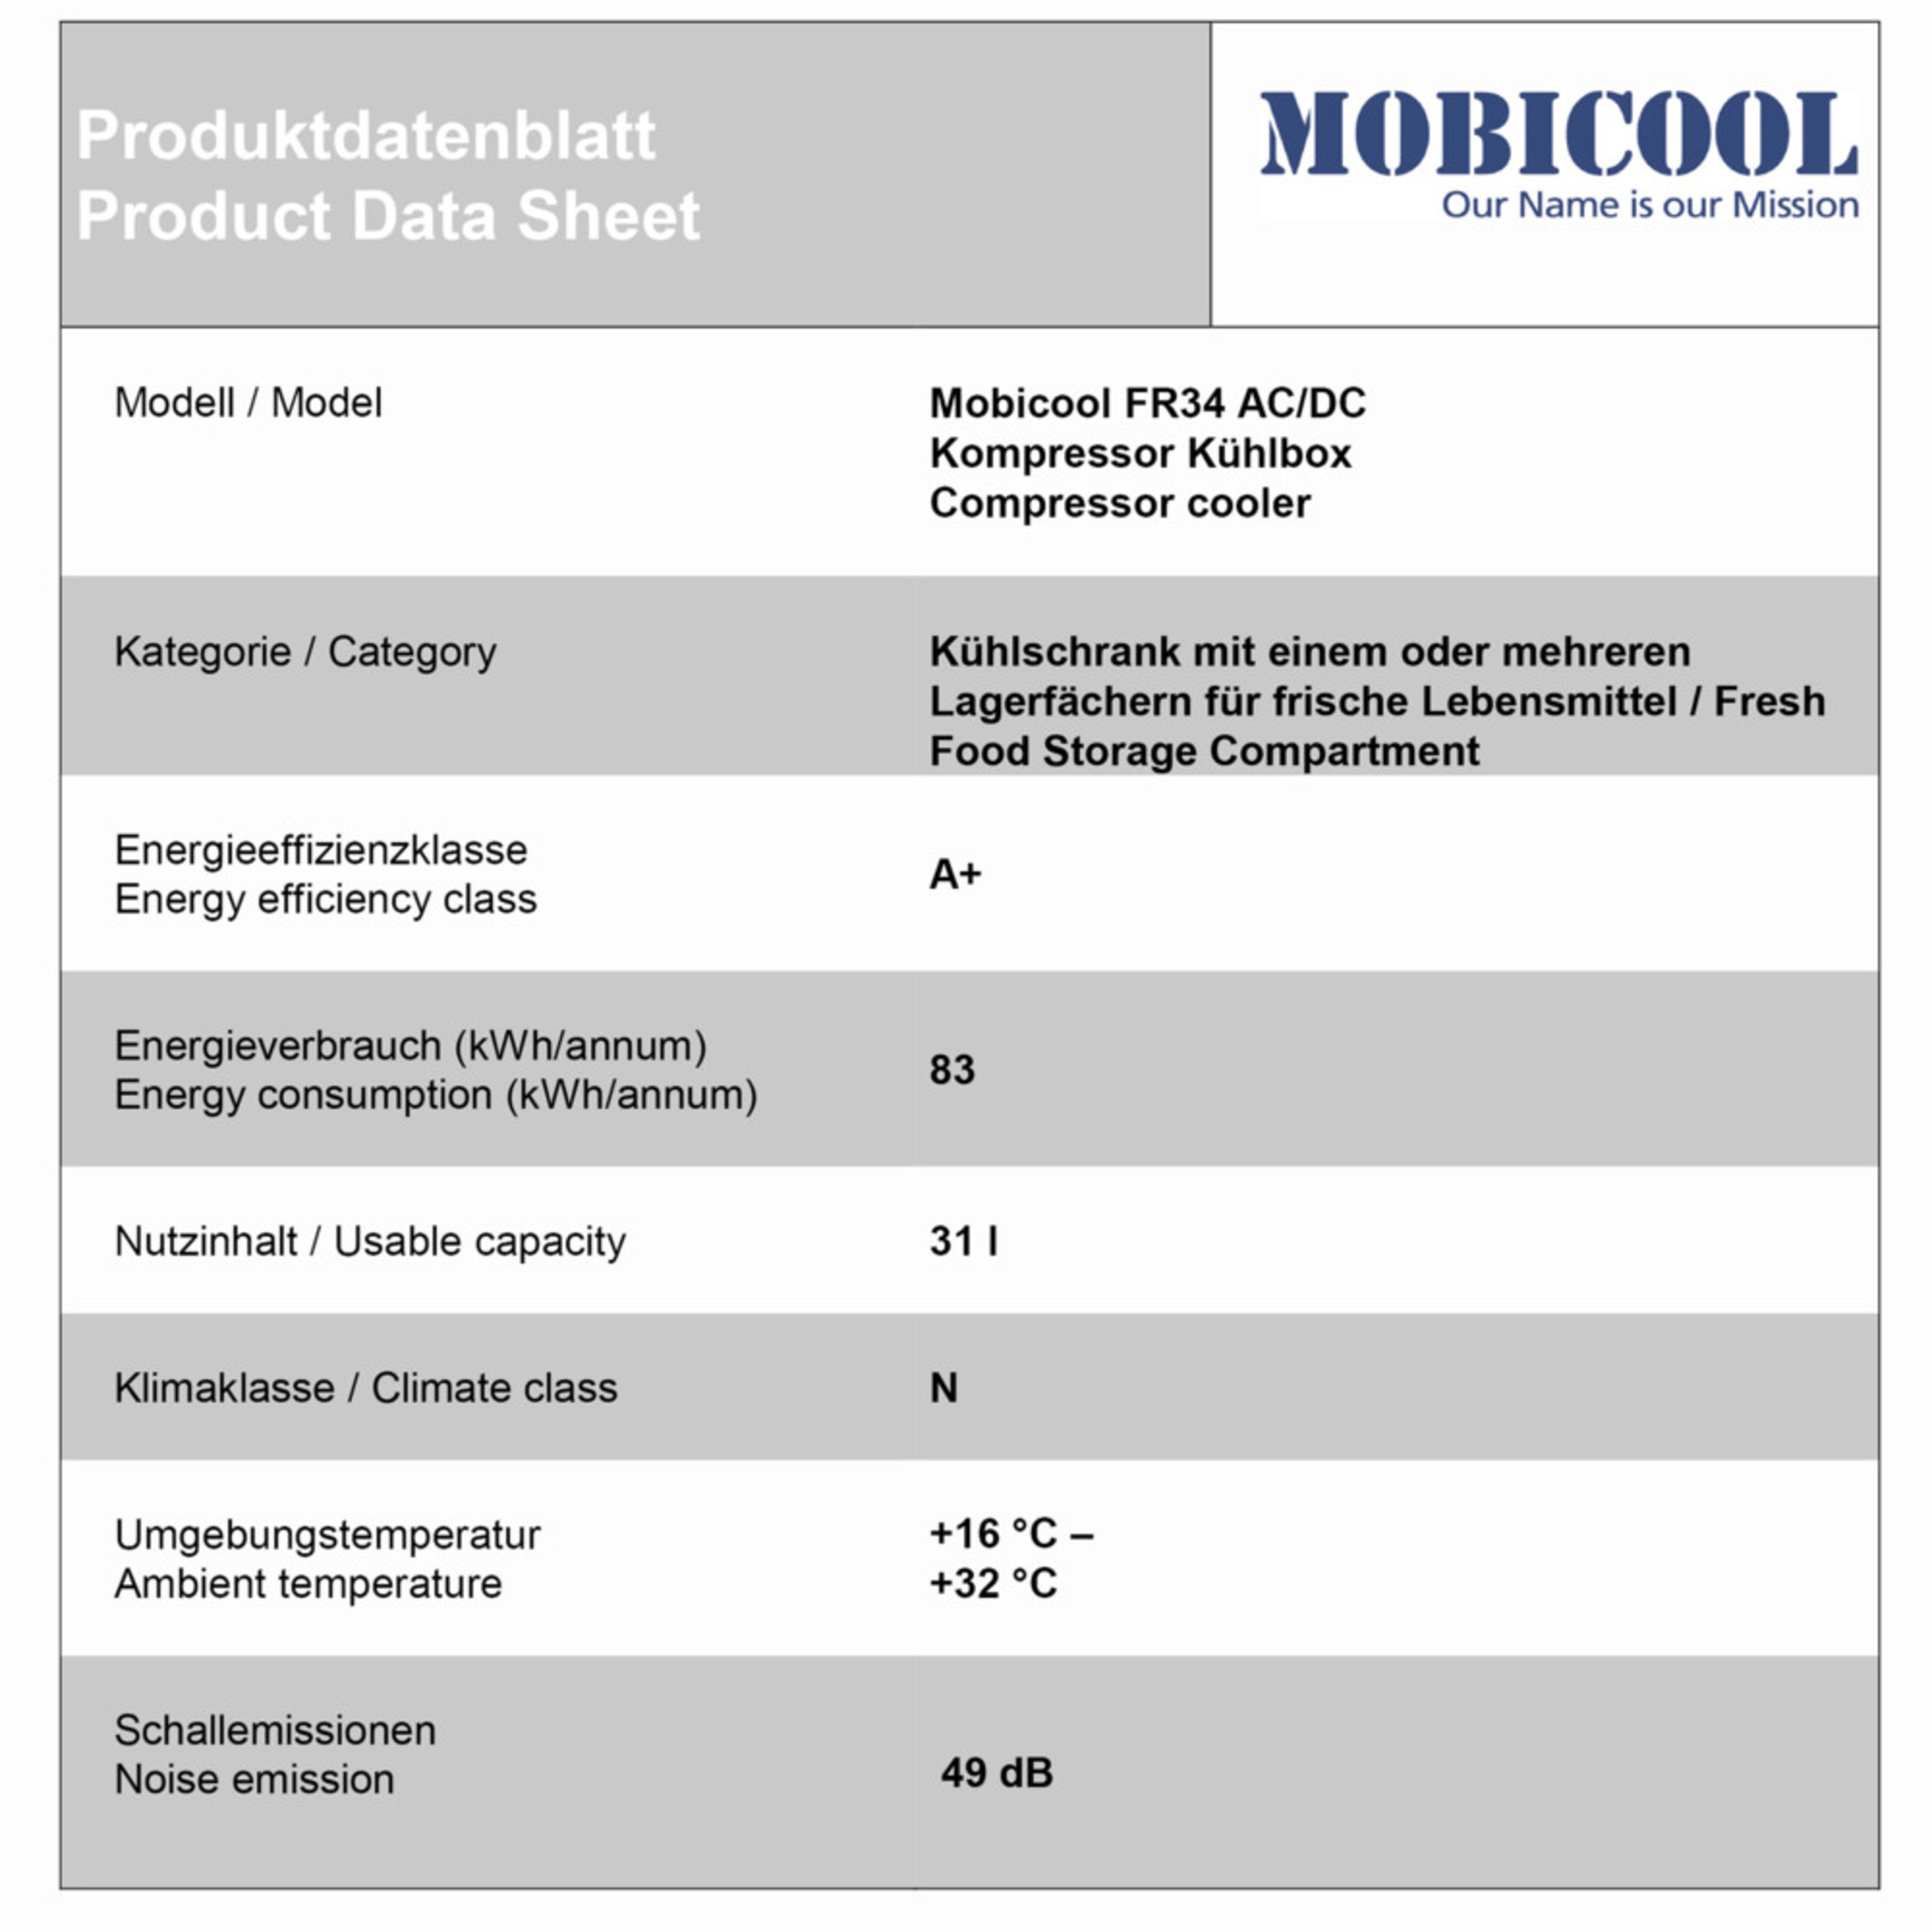 Mobicool FR34 Energy data sheet